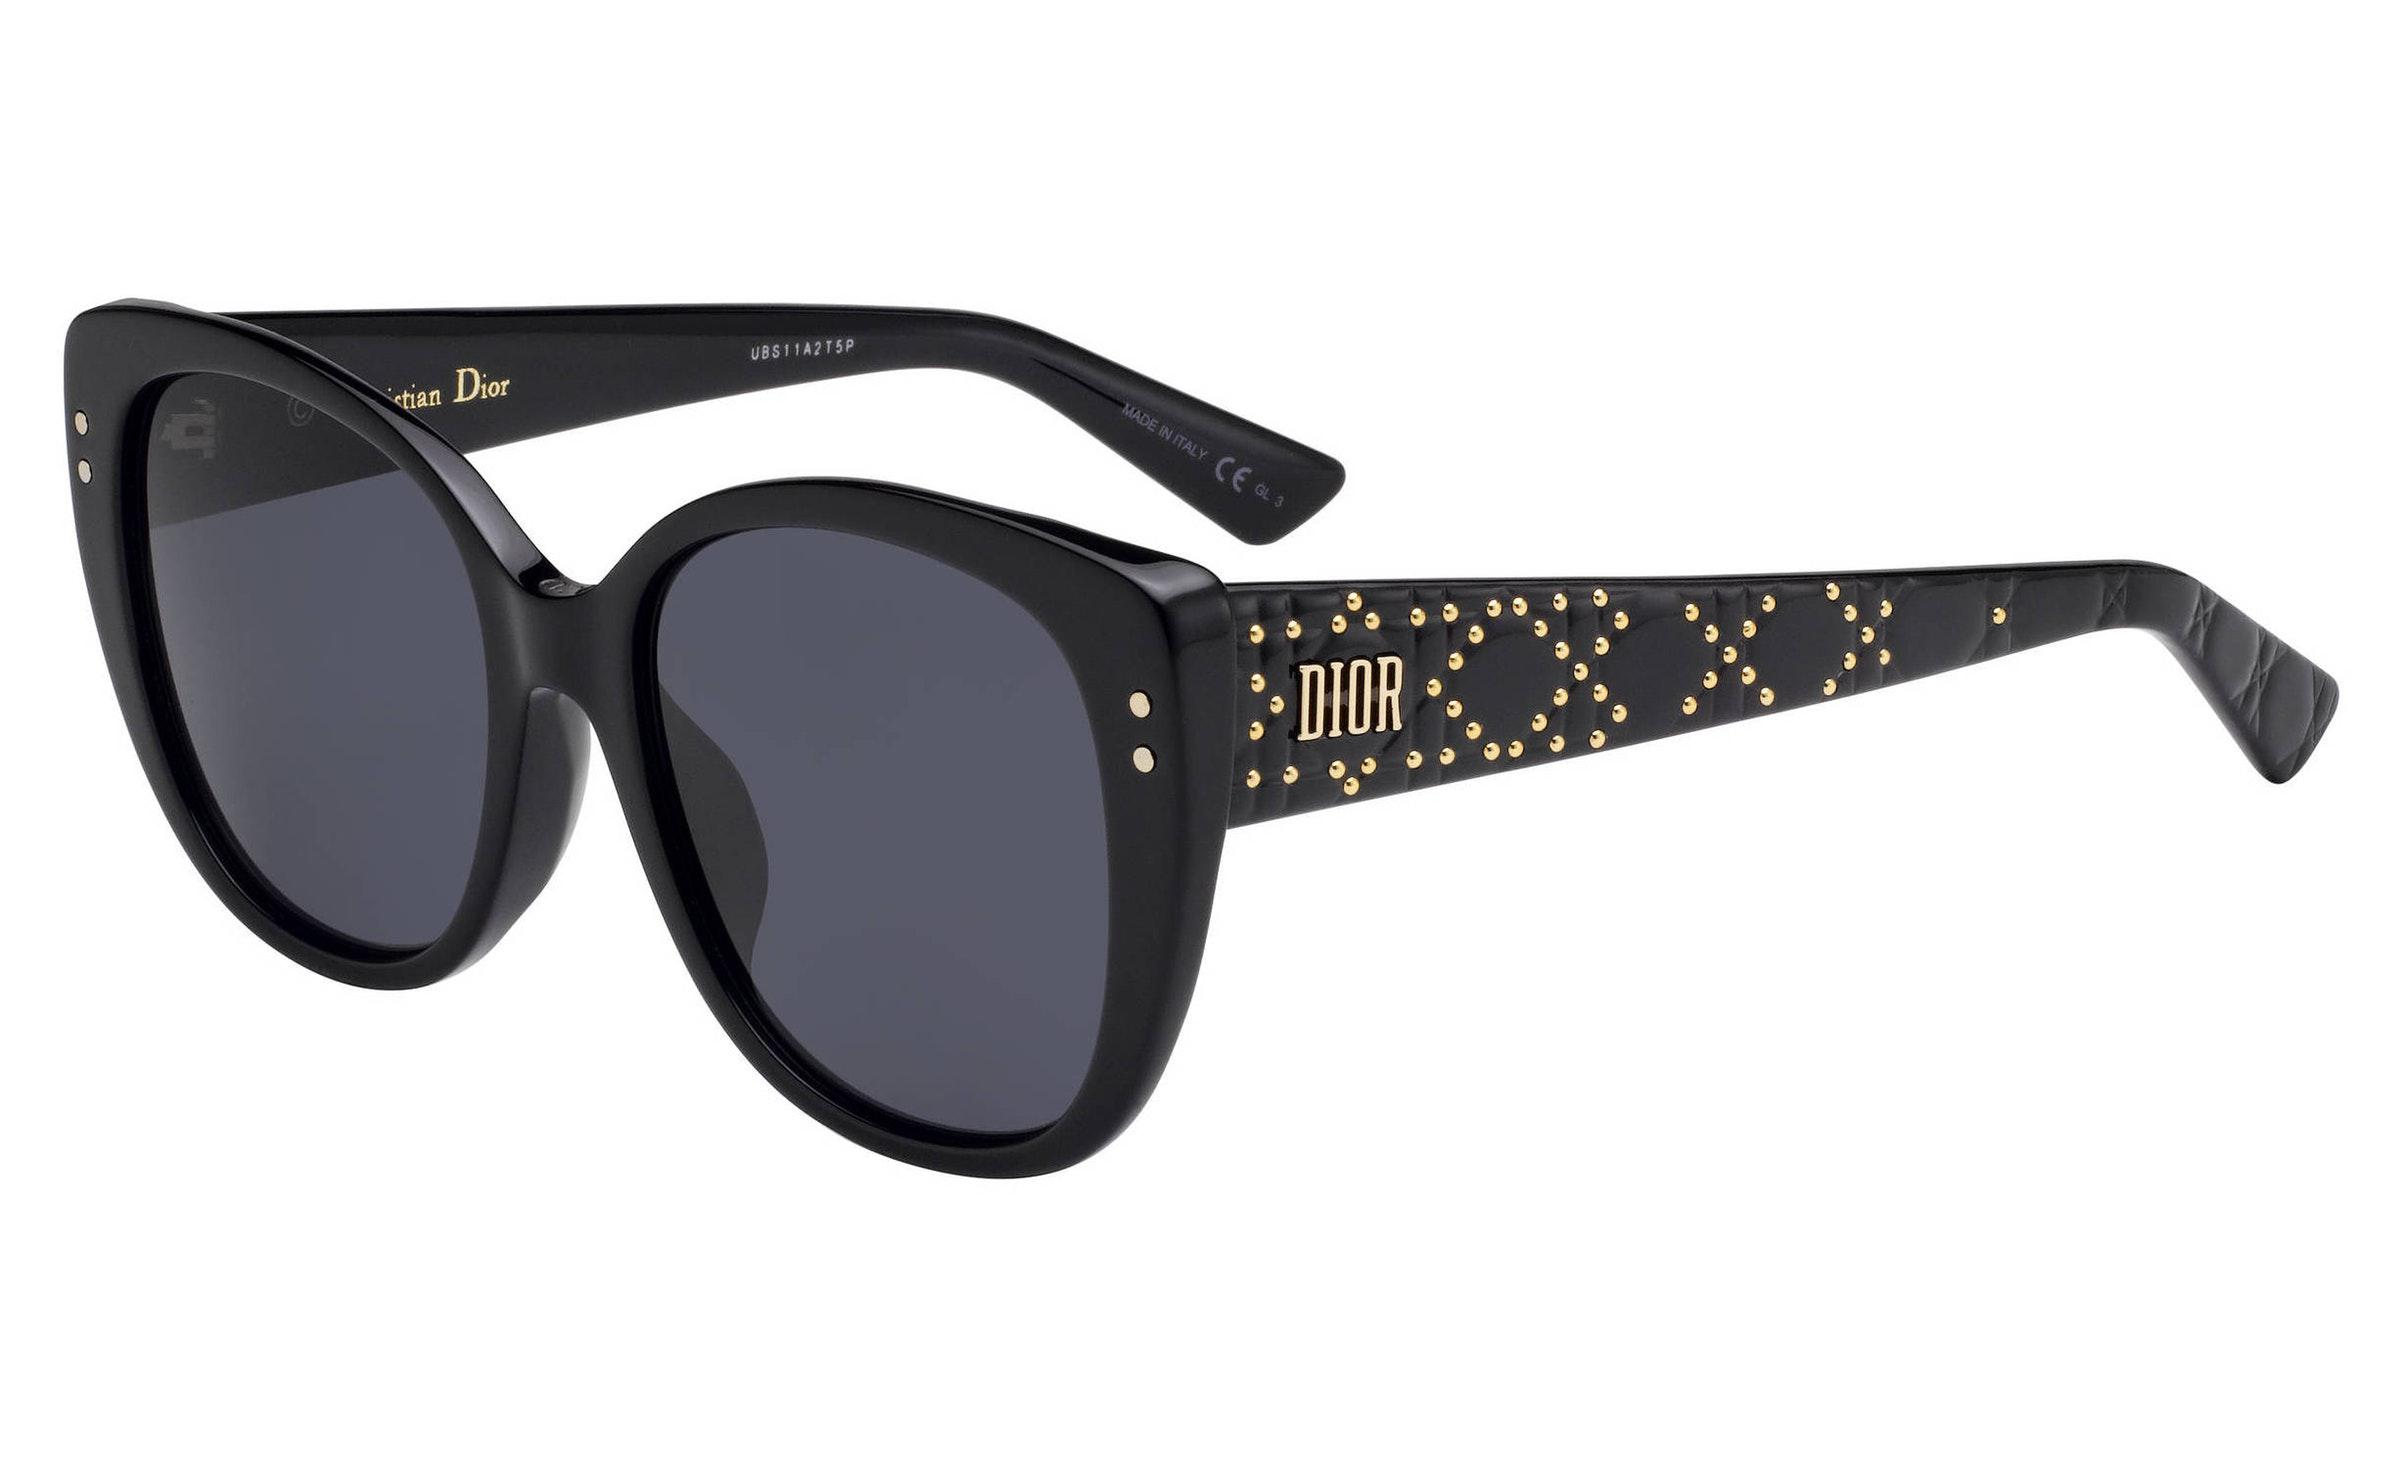 597da1818ea Lyst - Dior Dior Lady Dior Studs 4f Cat Eye Sunglasses in Black